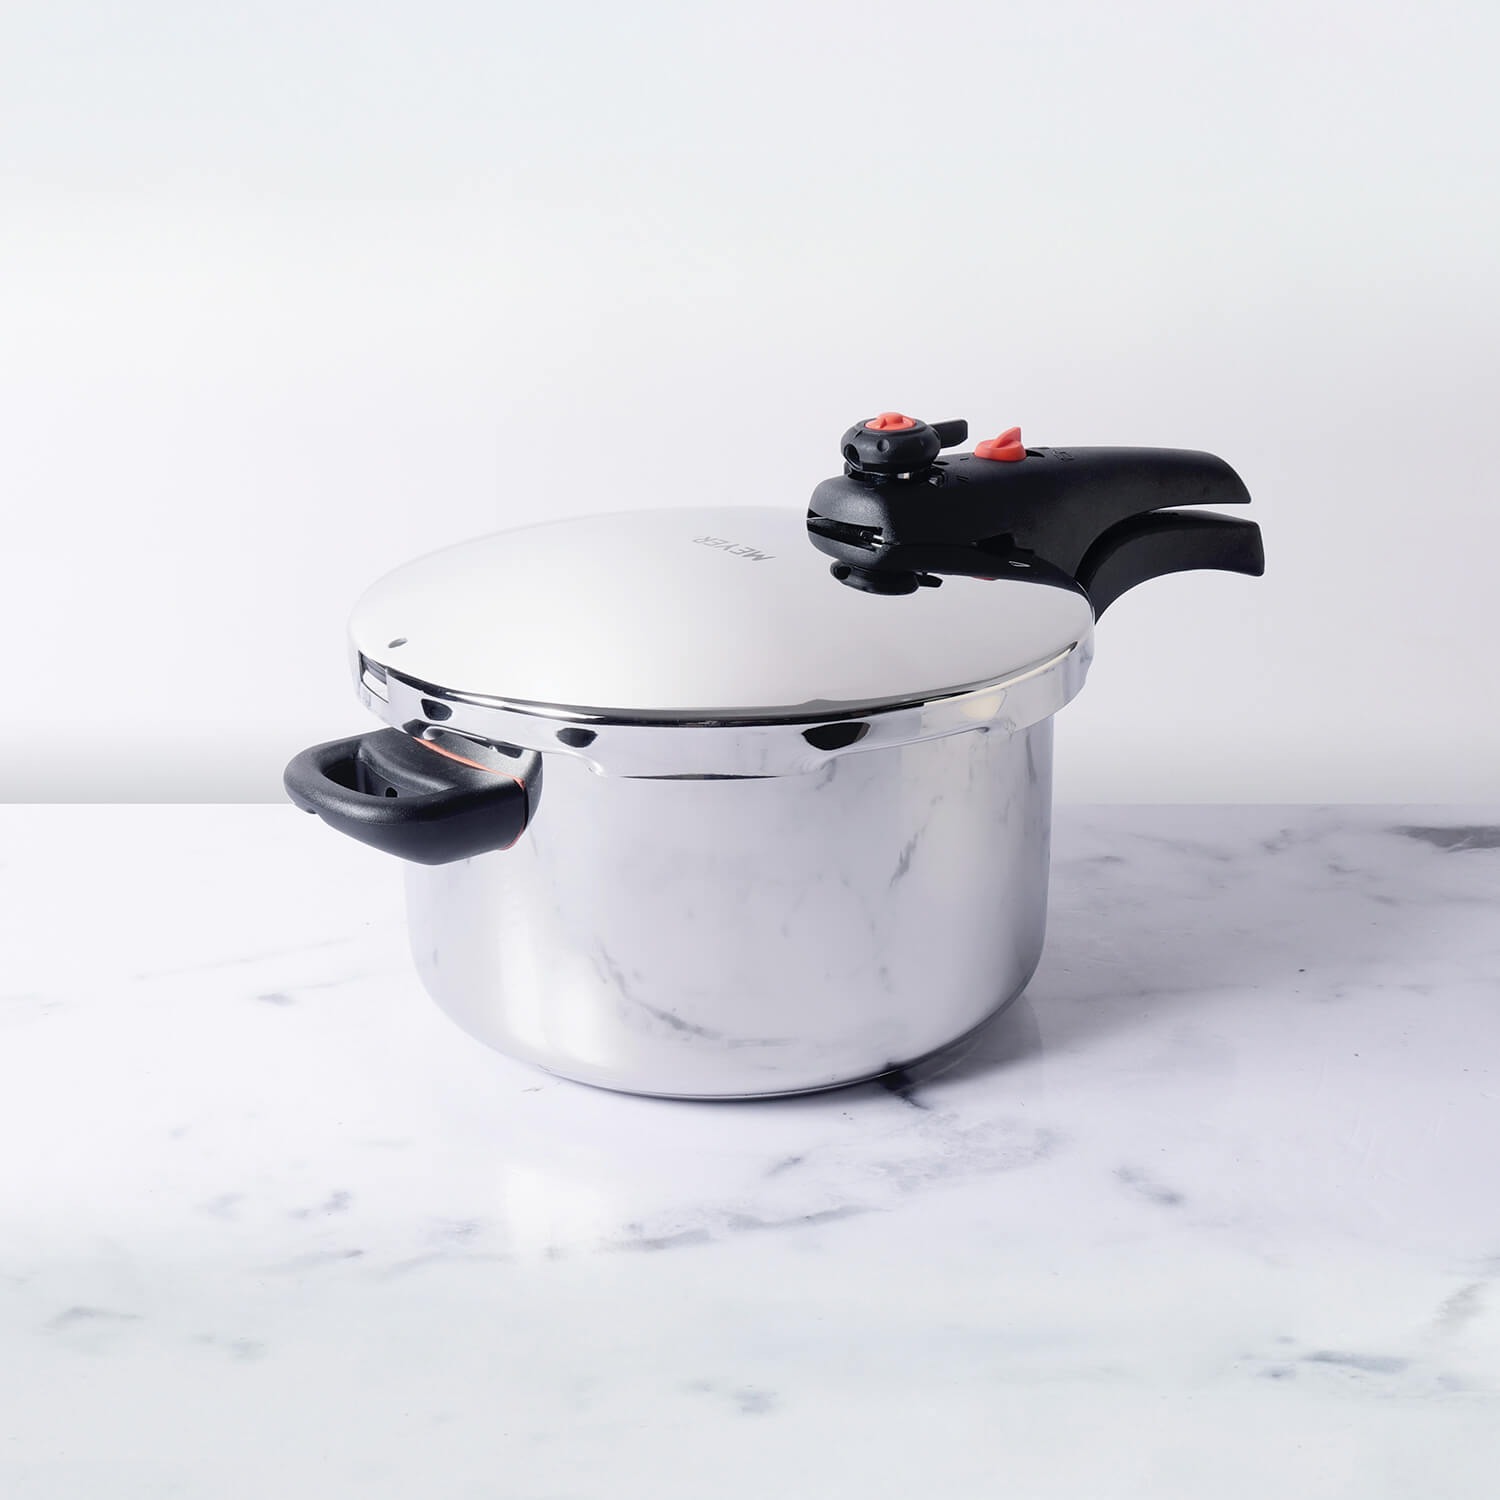 Meyer Presta Stainless Steel Dual Pressure Cooker, 4L - Pots and Pans